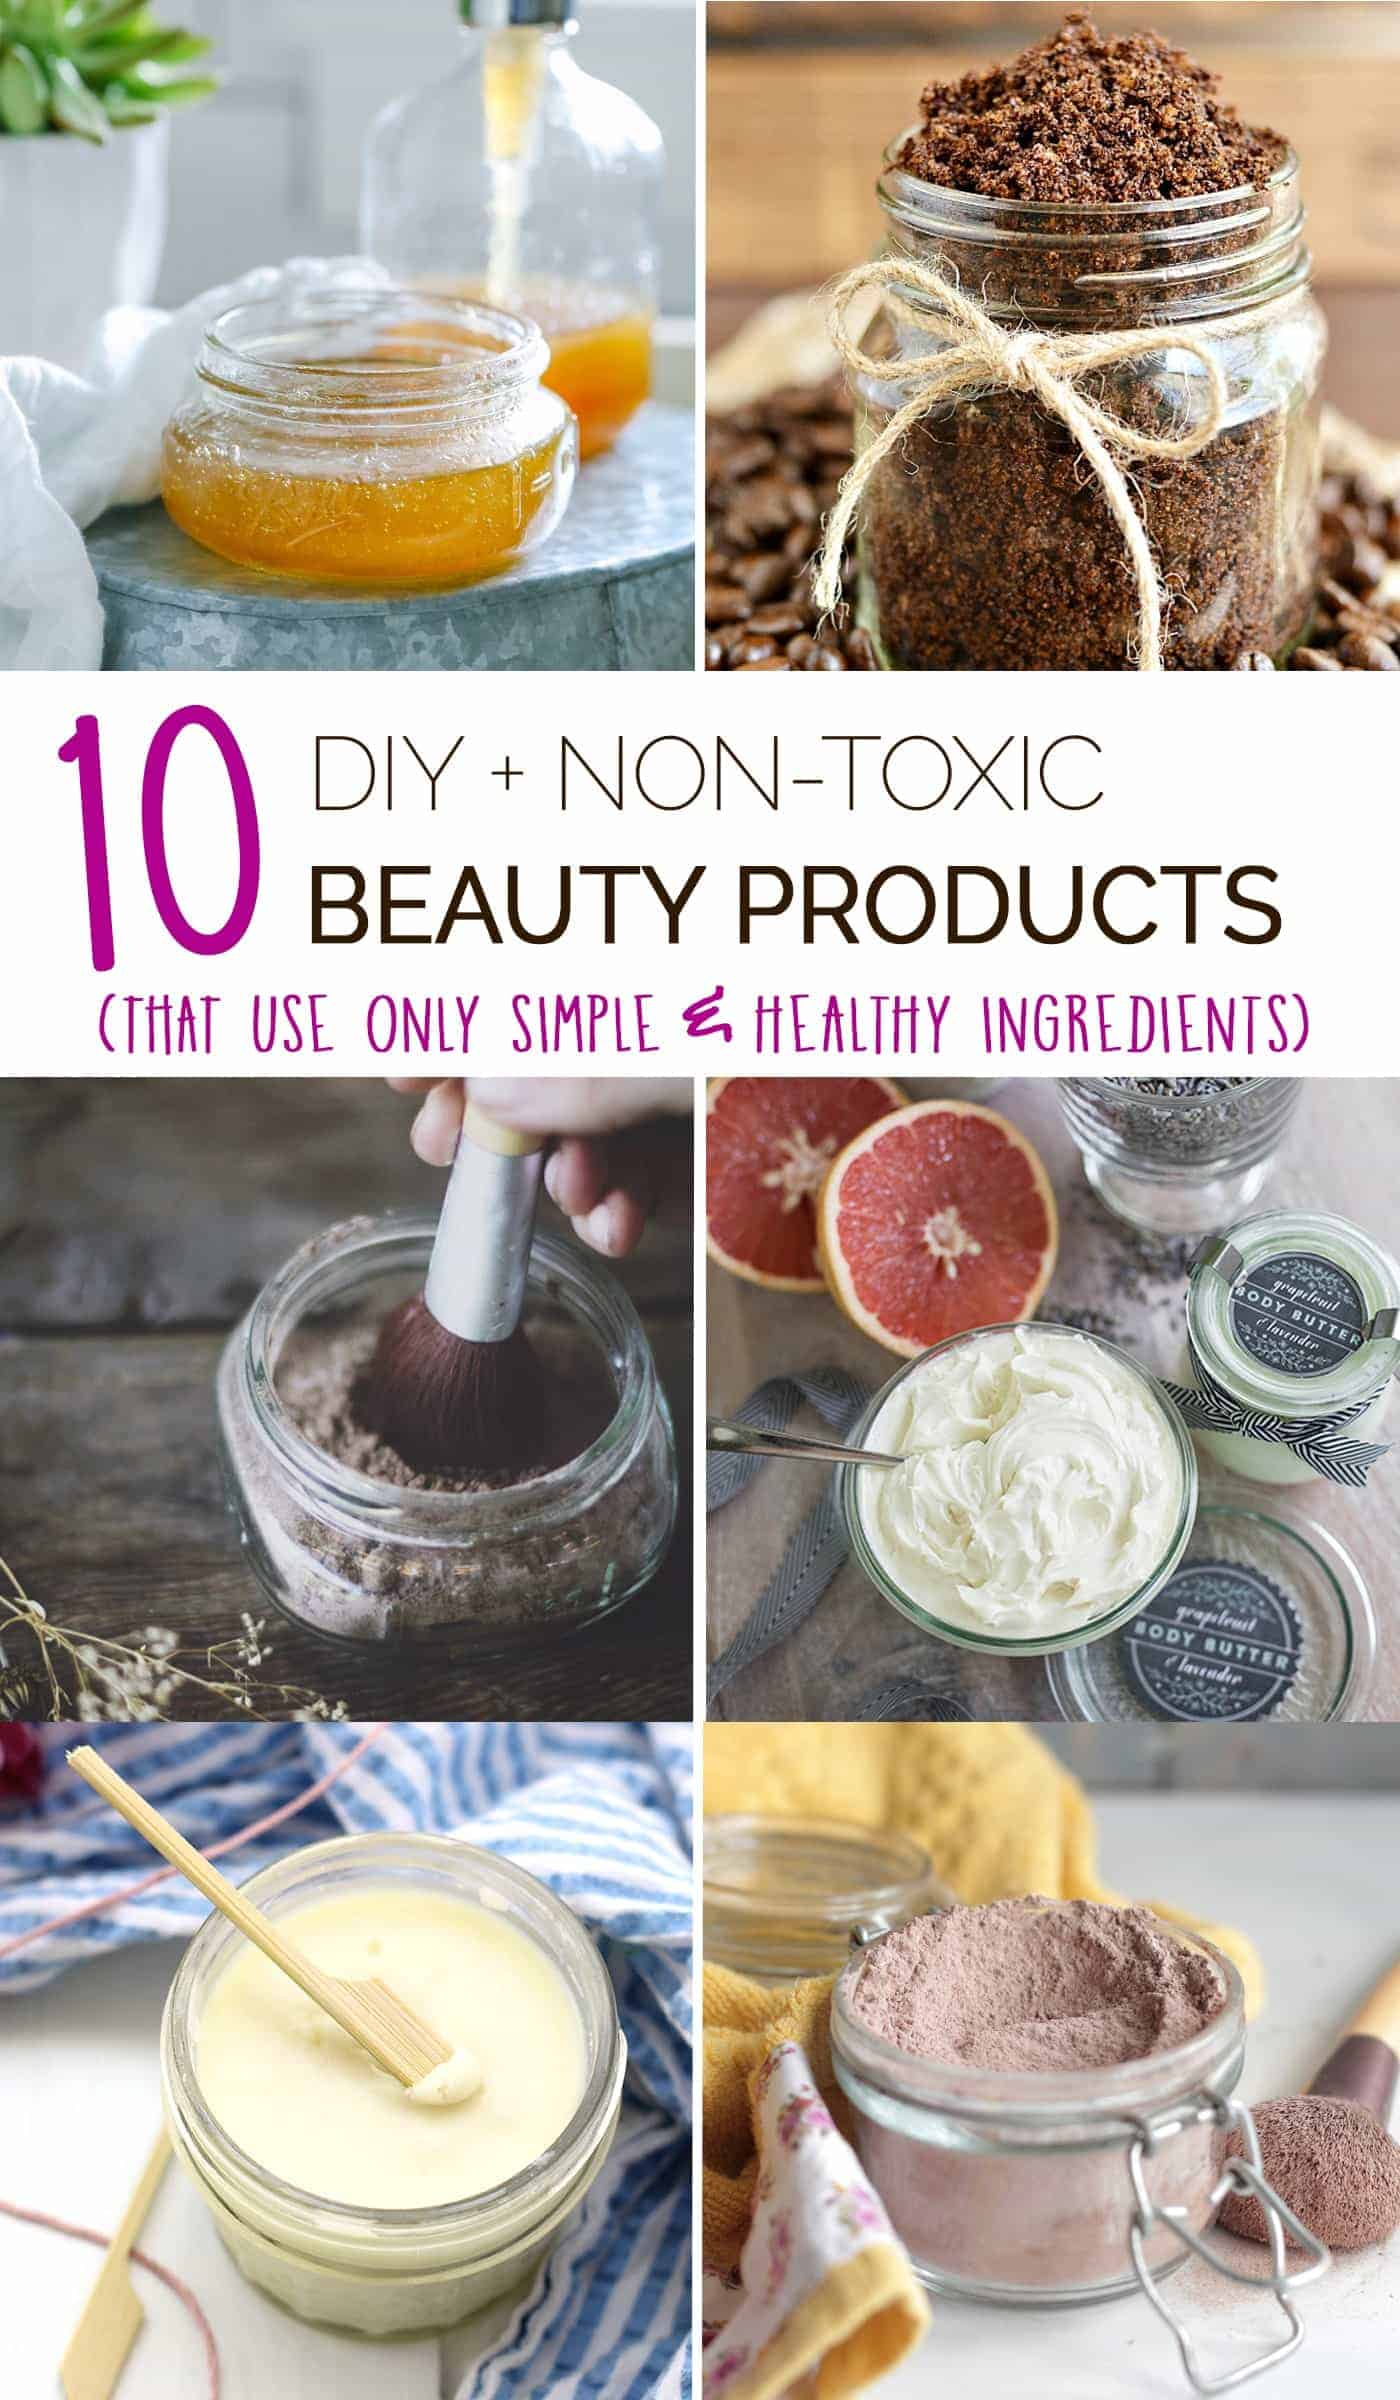 10 Non-Toxic DIY Beauty Products - Simply Quinoa